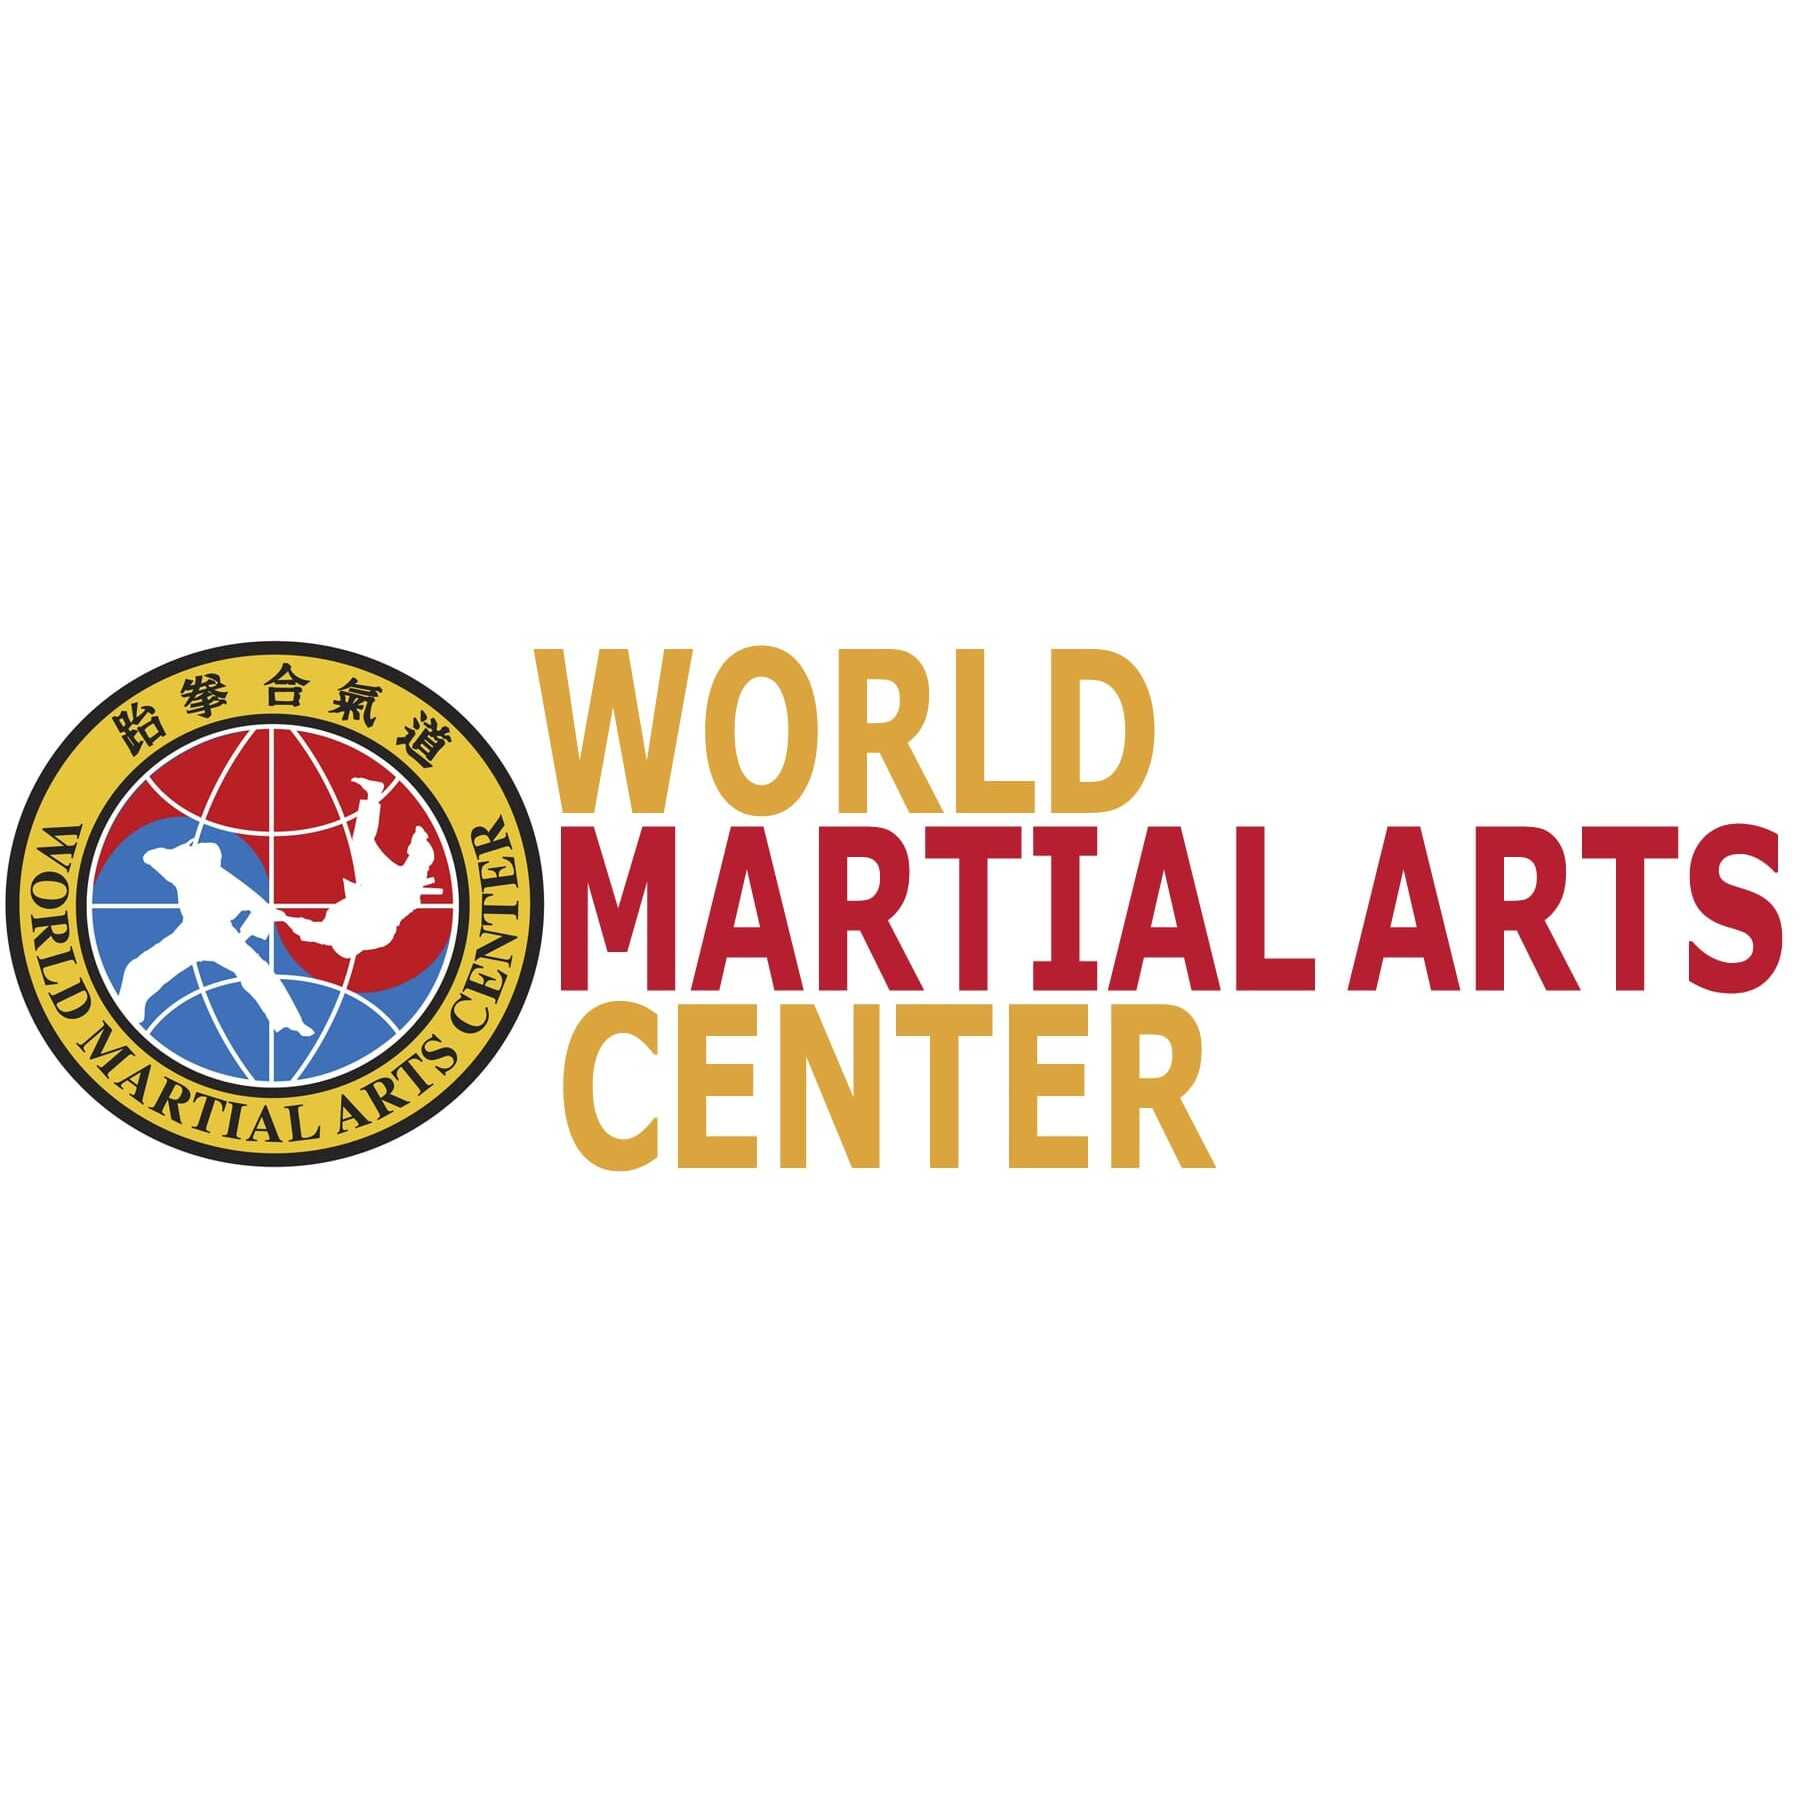 World Martial Arts Center